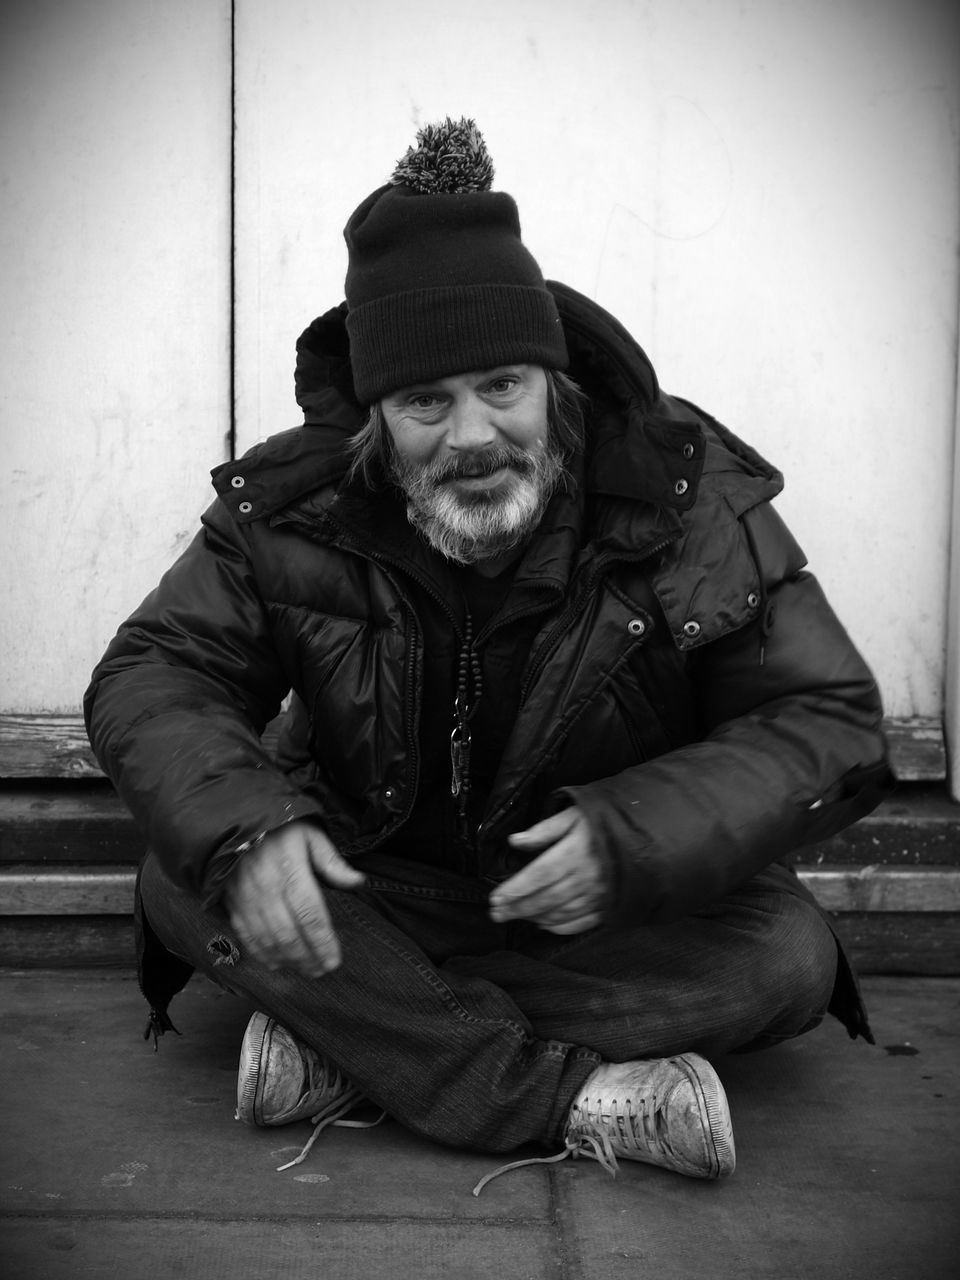 sitting, real people, one person, jacket, knit hat, full length, lifestyles, senior adult, front view, beard, senior men, looking at camera, outdoors, cap, portrait, warm clothing, happiness, day, city, people